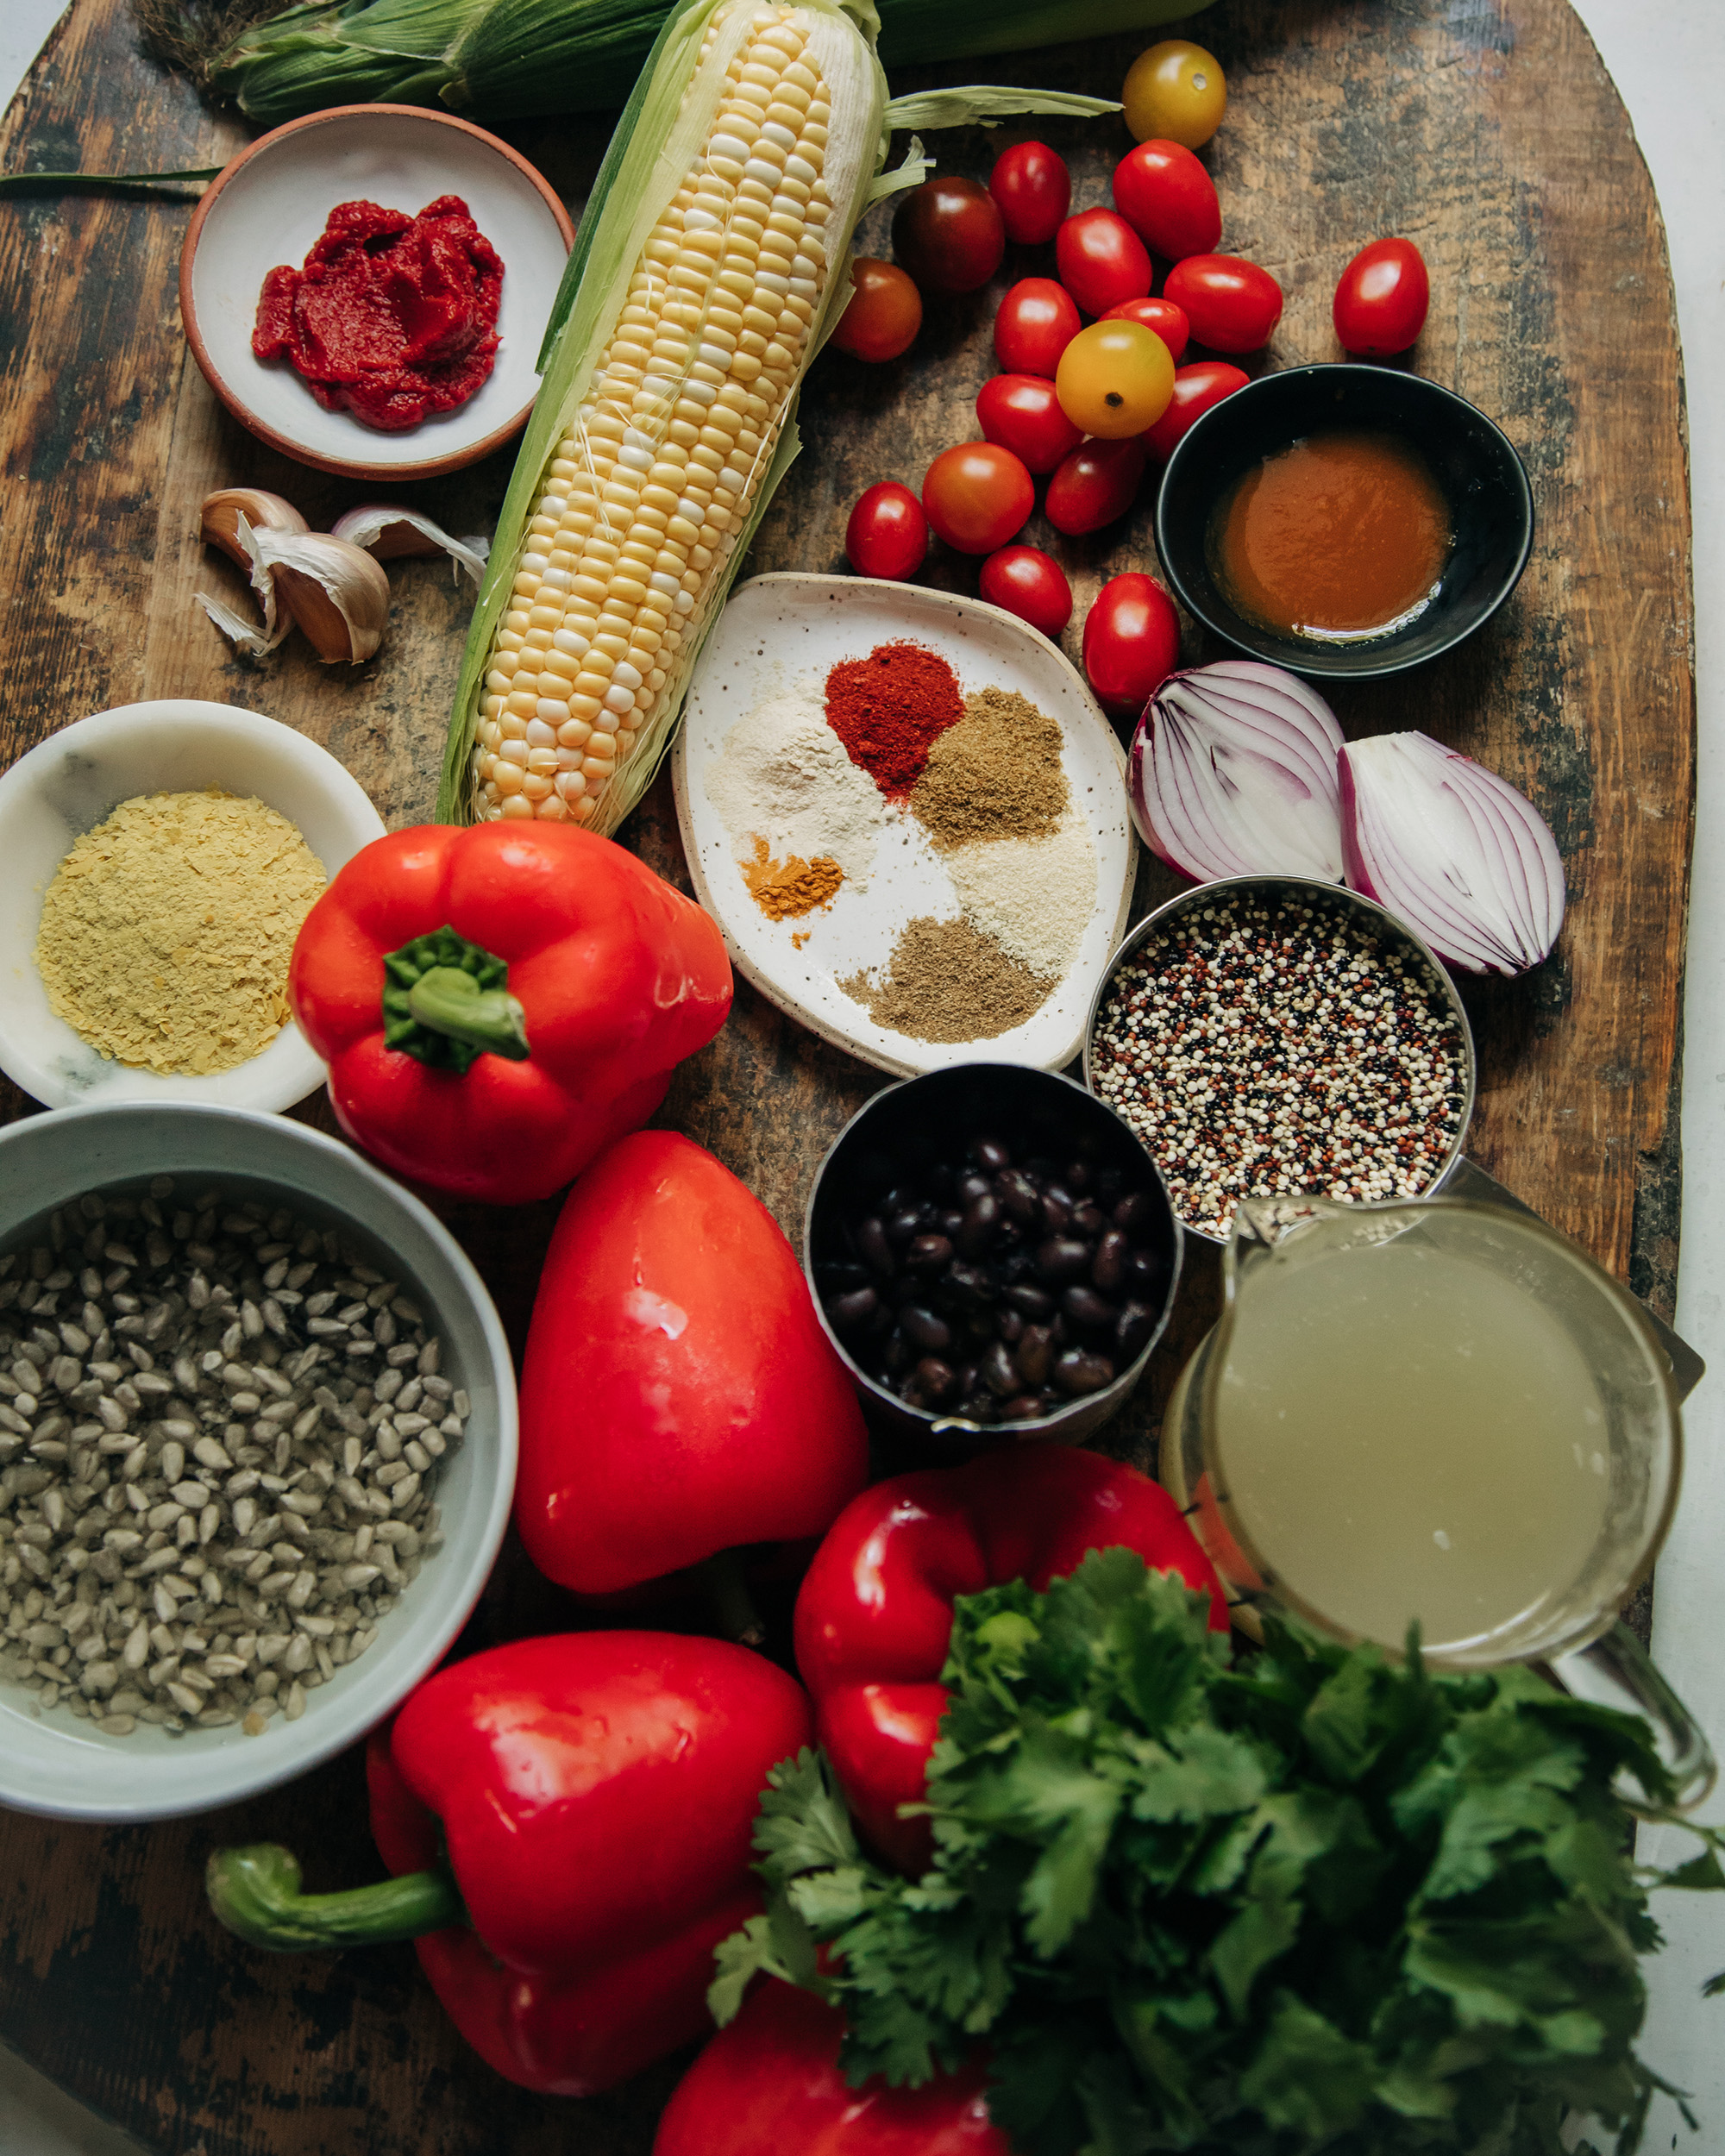 An overhead image of ingredients for a hearty vegan meal, including corn on the cob, a can of black beans, various spices, red bell peppers, cilantro, cherry tomatoes, garlic, and quinoa.